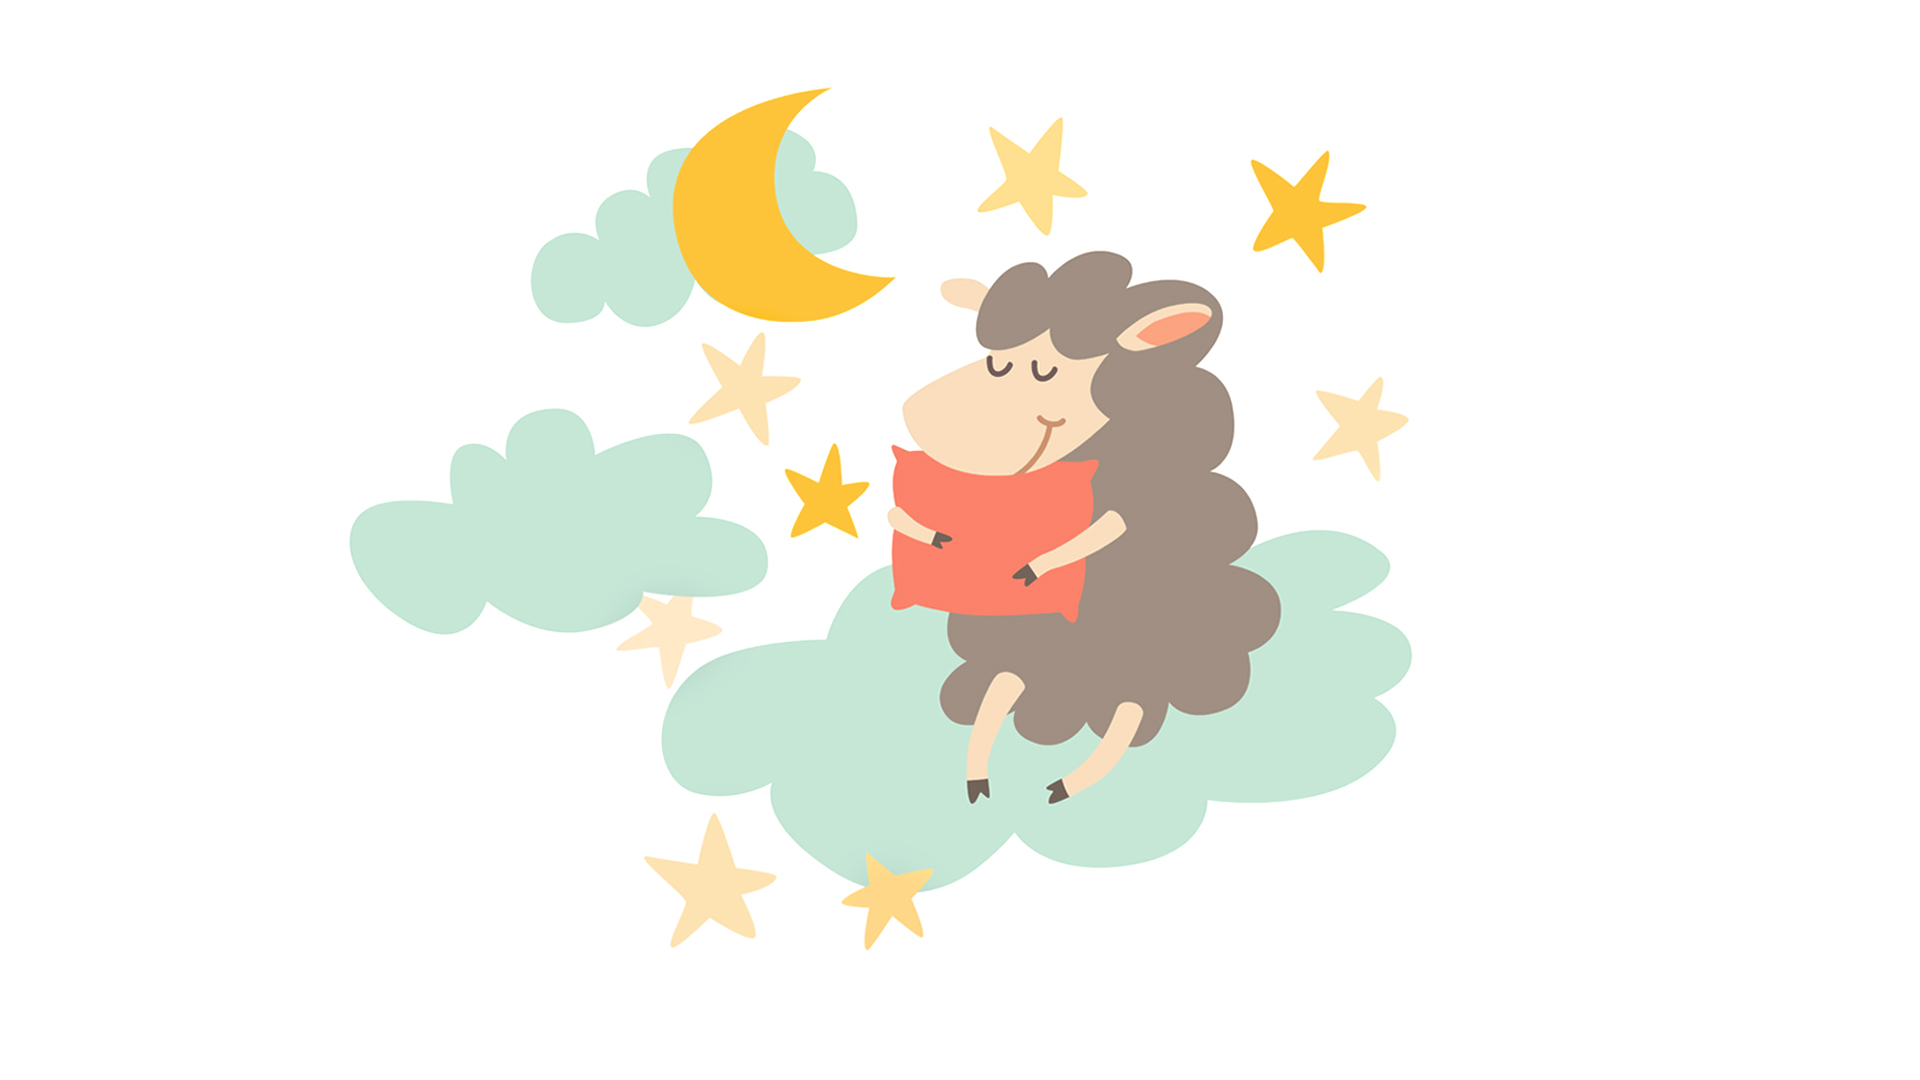 Sleeping sheep with pillow on night sky | How to Create Peaceful Sleep Rituals